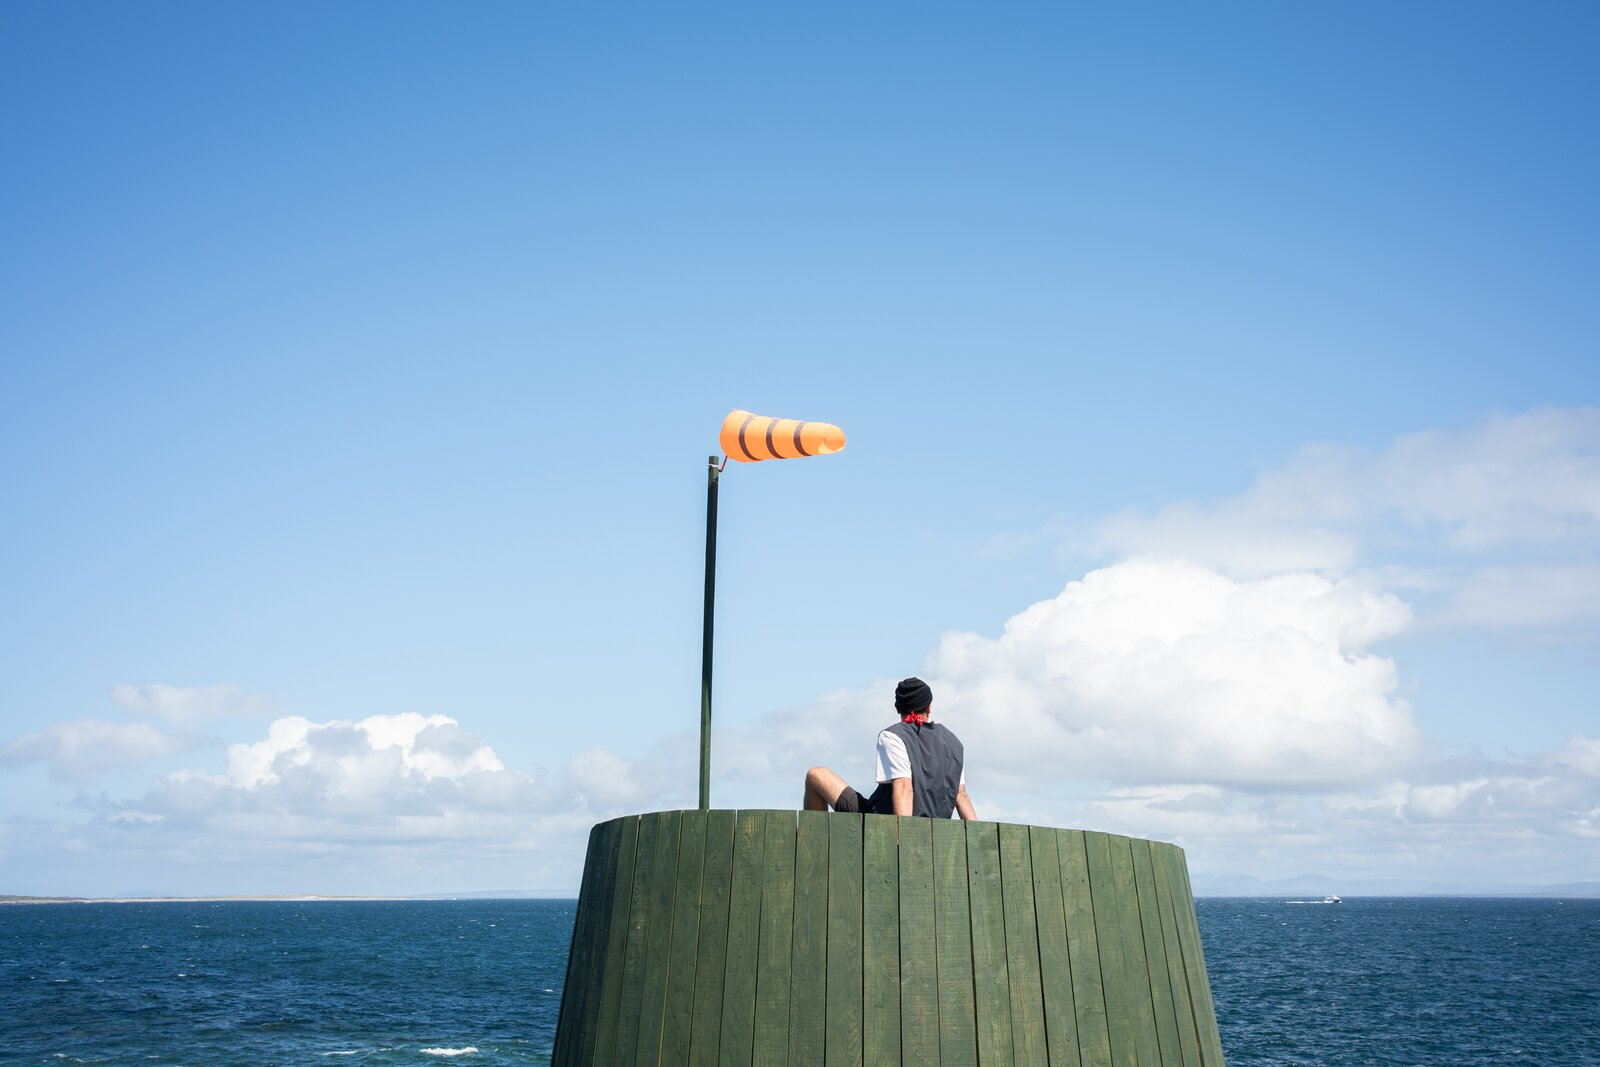 Photo 3 of 12 in An Off-Grid Artist's Retreat Pops Up on an Island Near Ireland